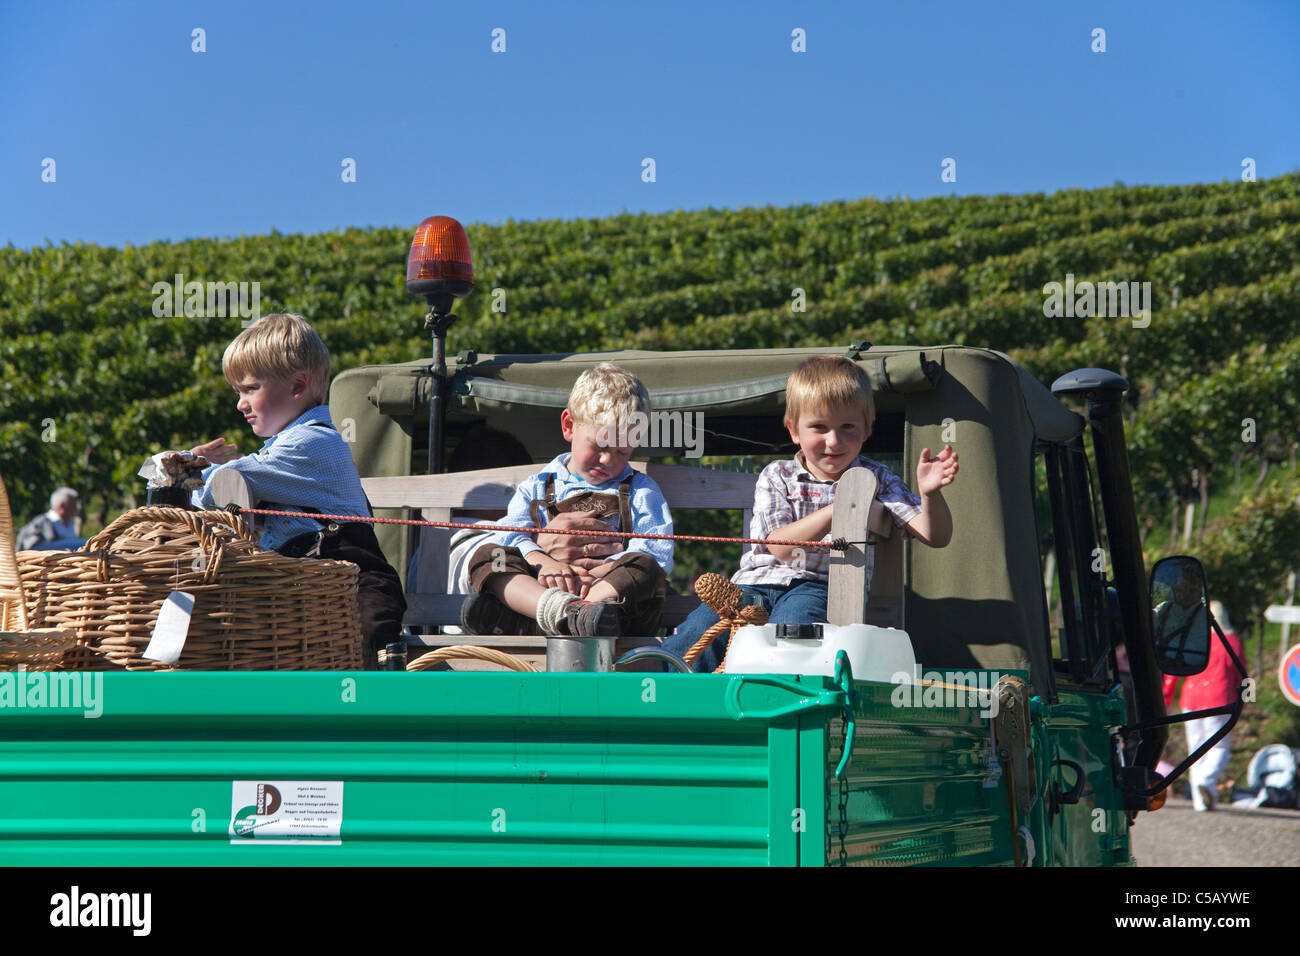 Kinder auf einem Unimog in Sasbachwalden, Schwarzwald, Kids on a Unimog Vineyards grapes, Sabachwalden, Black Forest - Stock Image